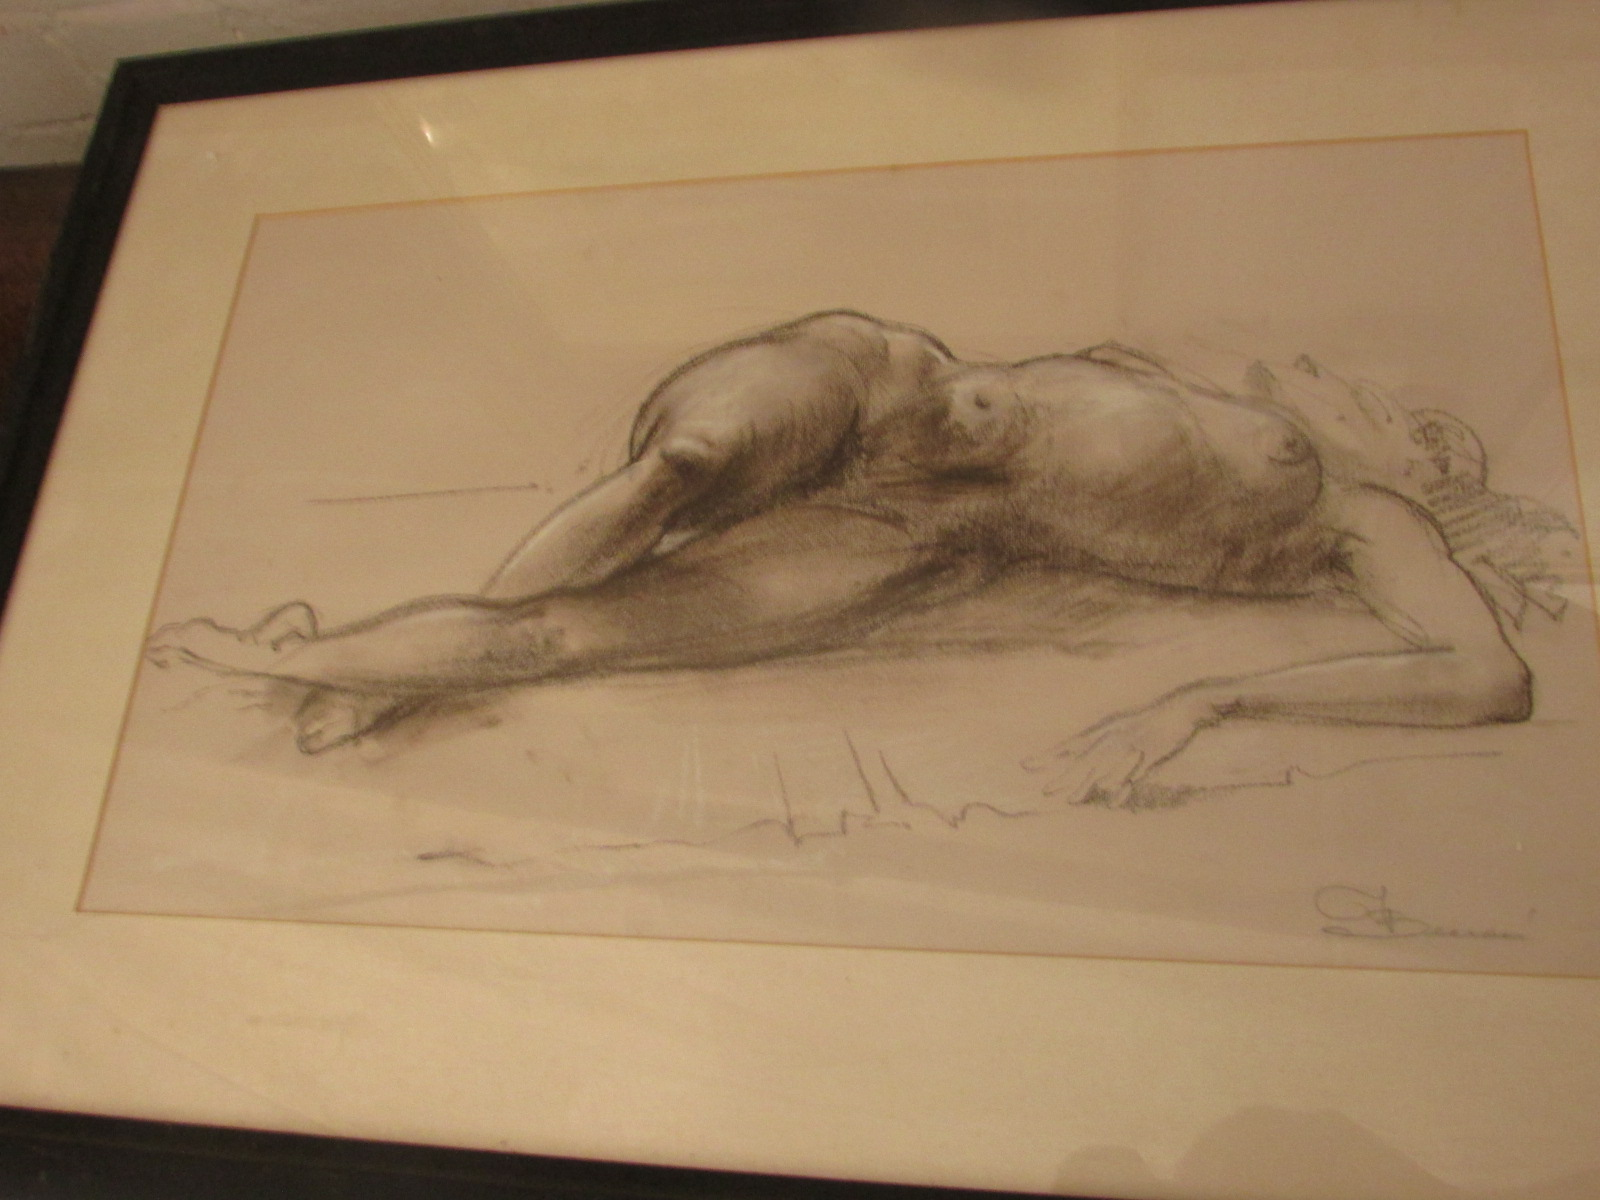 Lot 18 - Reclining nude woman, conte crayon and chalk, indistinct signature lower right (perhaps F.